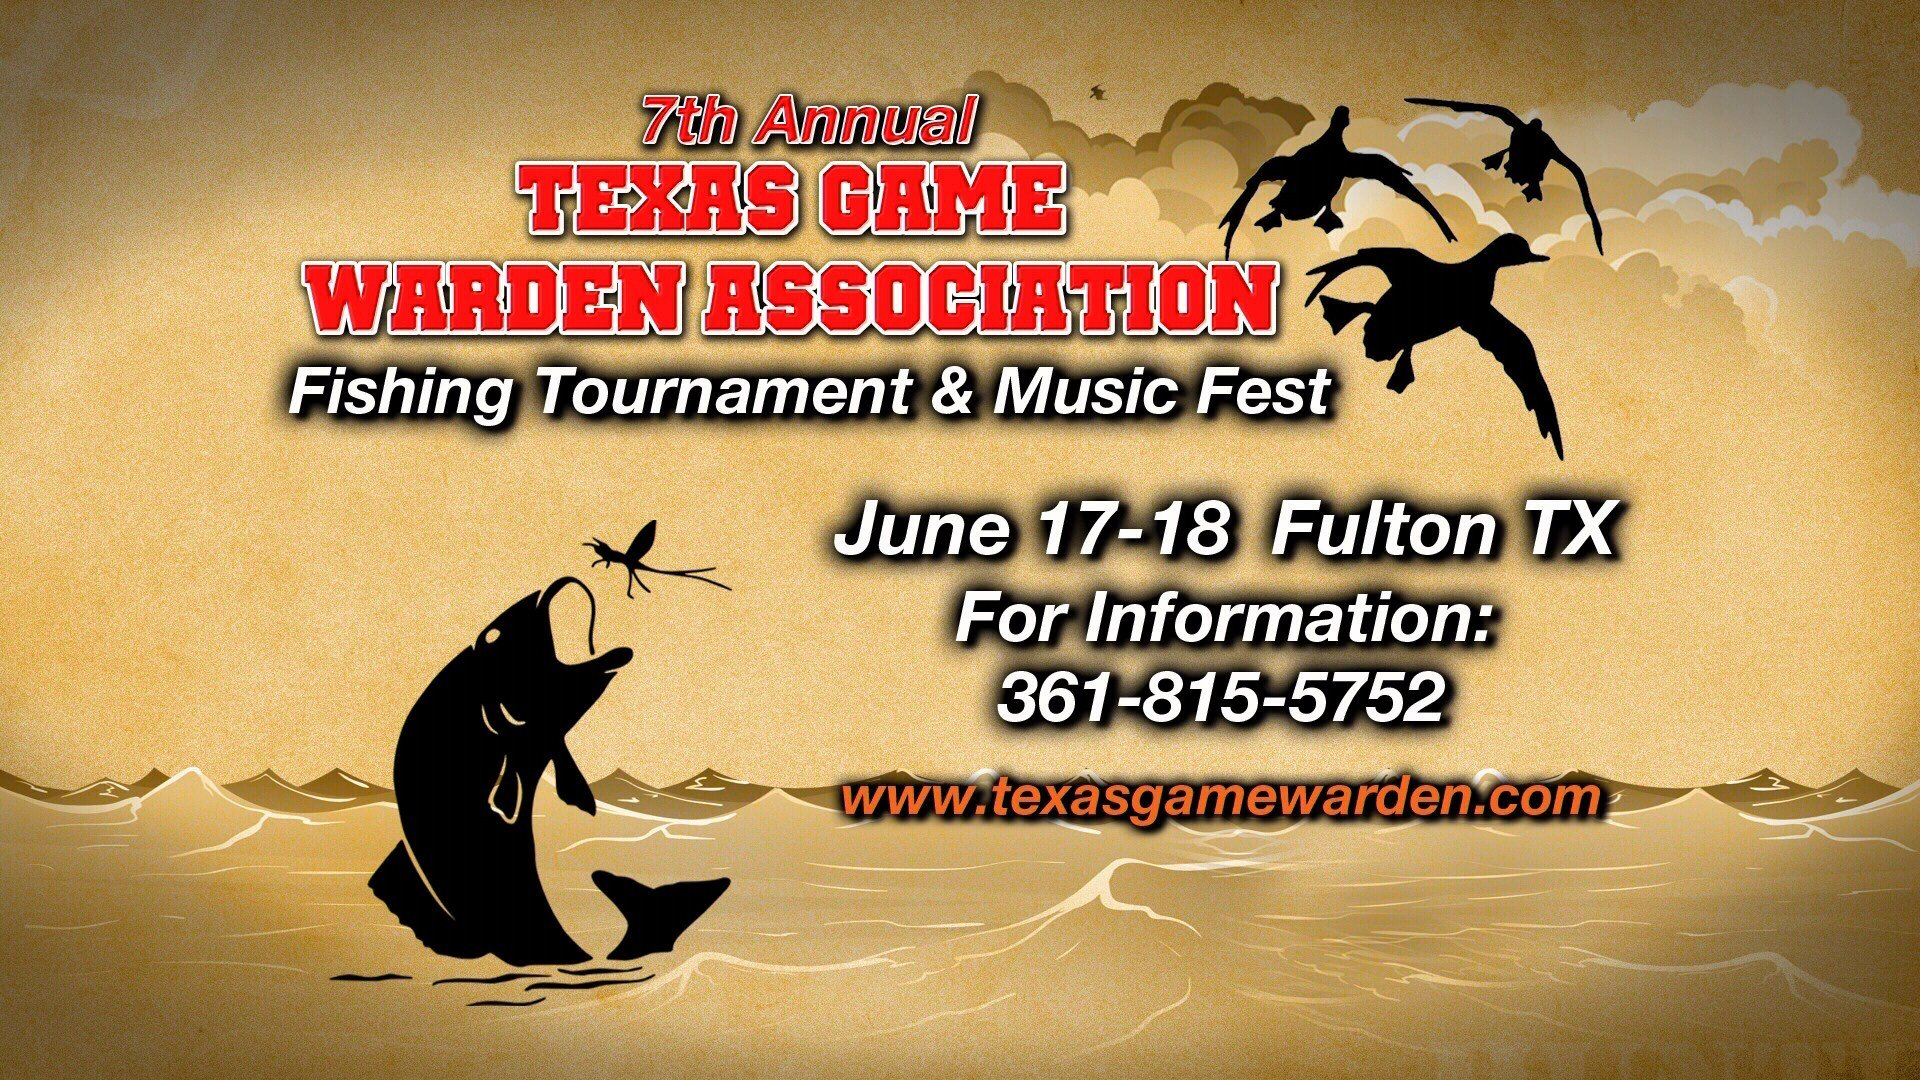 Texas game warden association 7th annual fishing for Texas game and fish